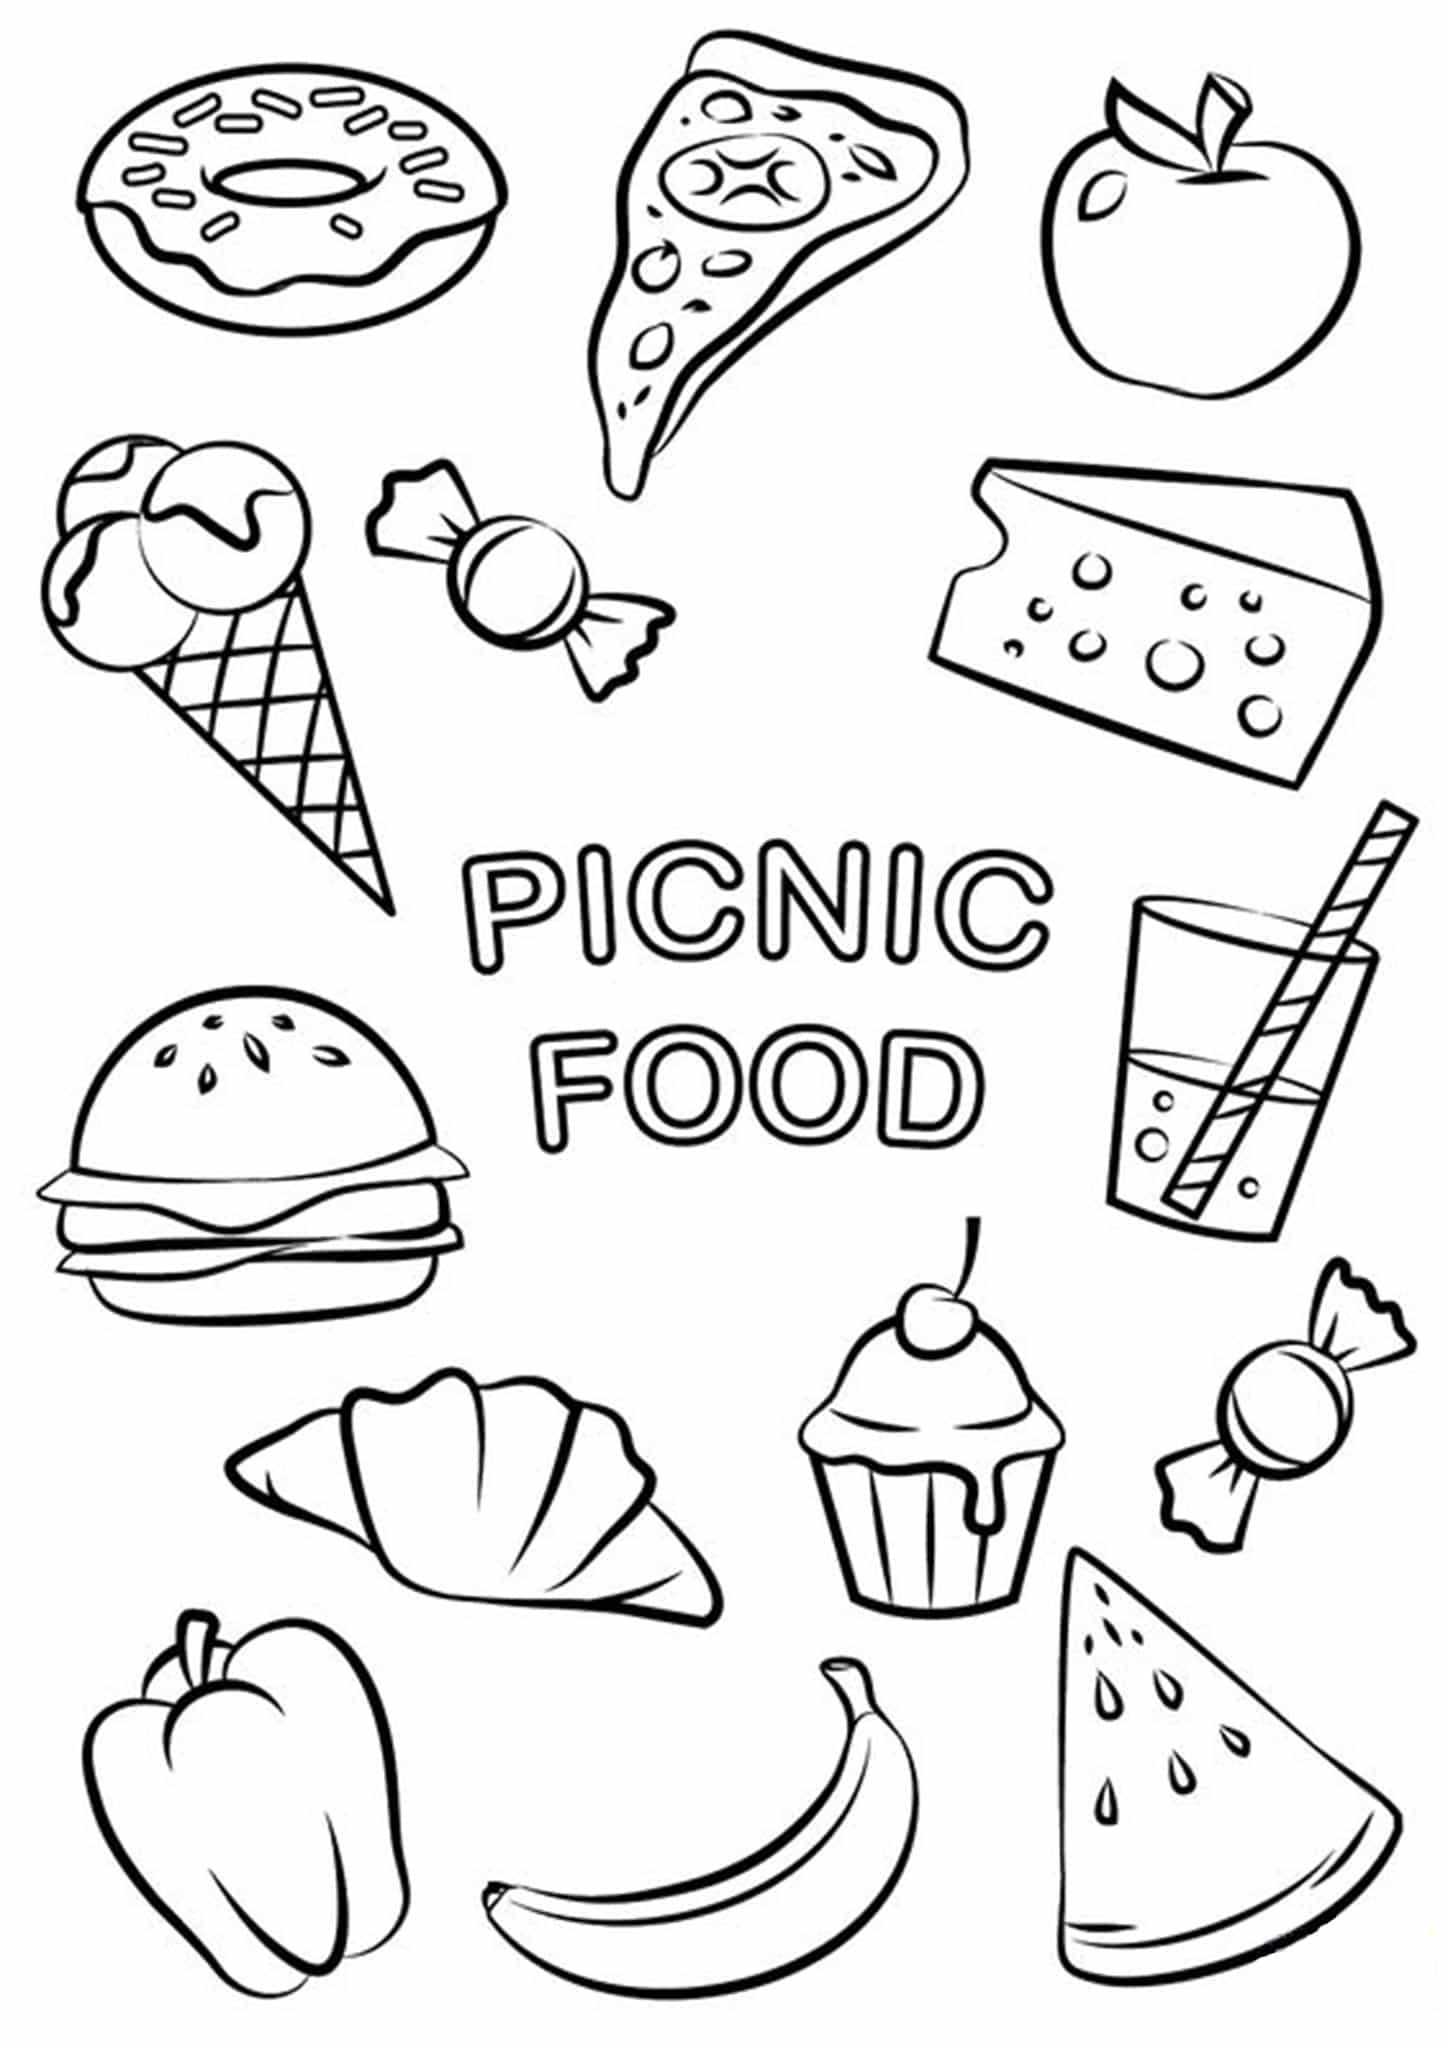 food colouring sheet cute food coloring pages coloring pages to download and colouring food sheet